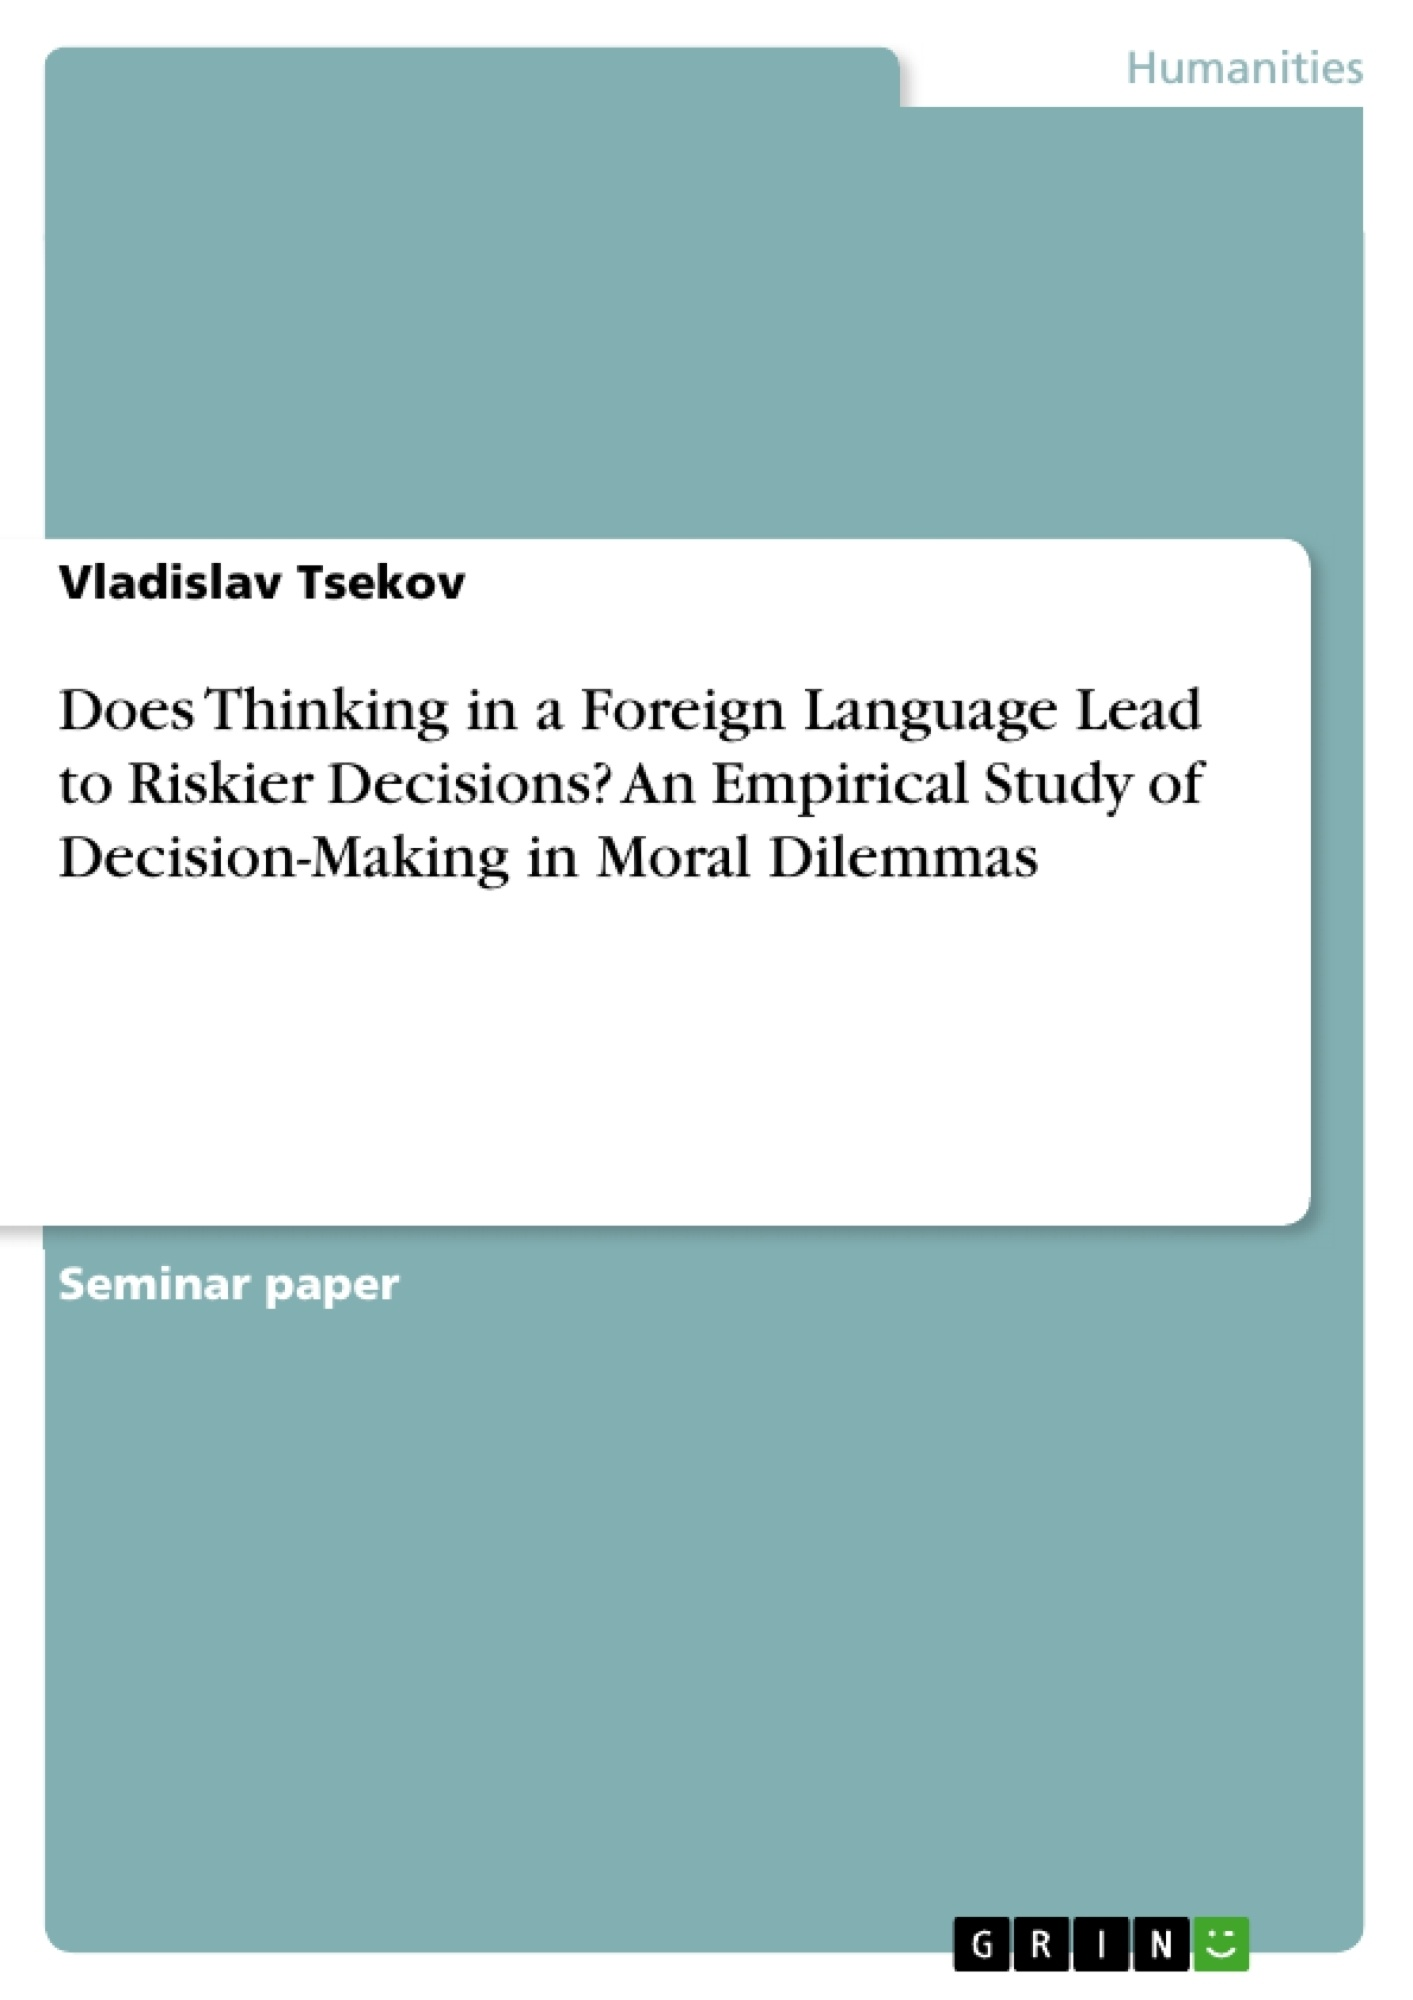 Title: Does Thinking in a Foreign Language Lead to Riskier Decisions? An Empirical Study of Decision-Making in Moral Dilemmas